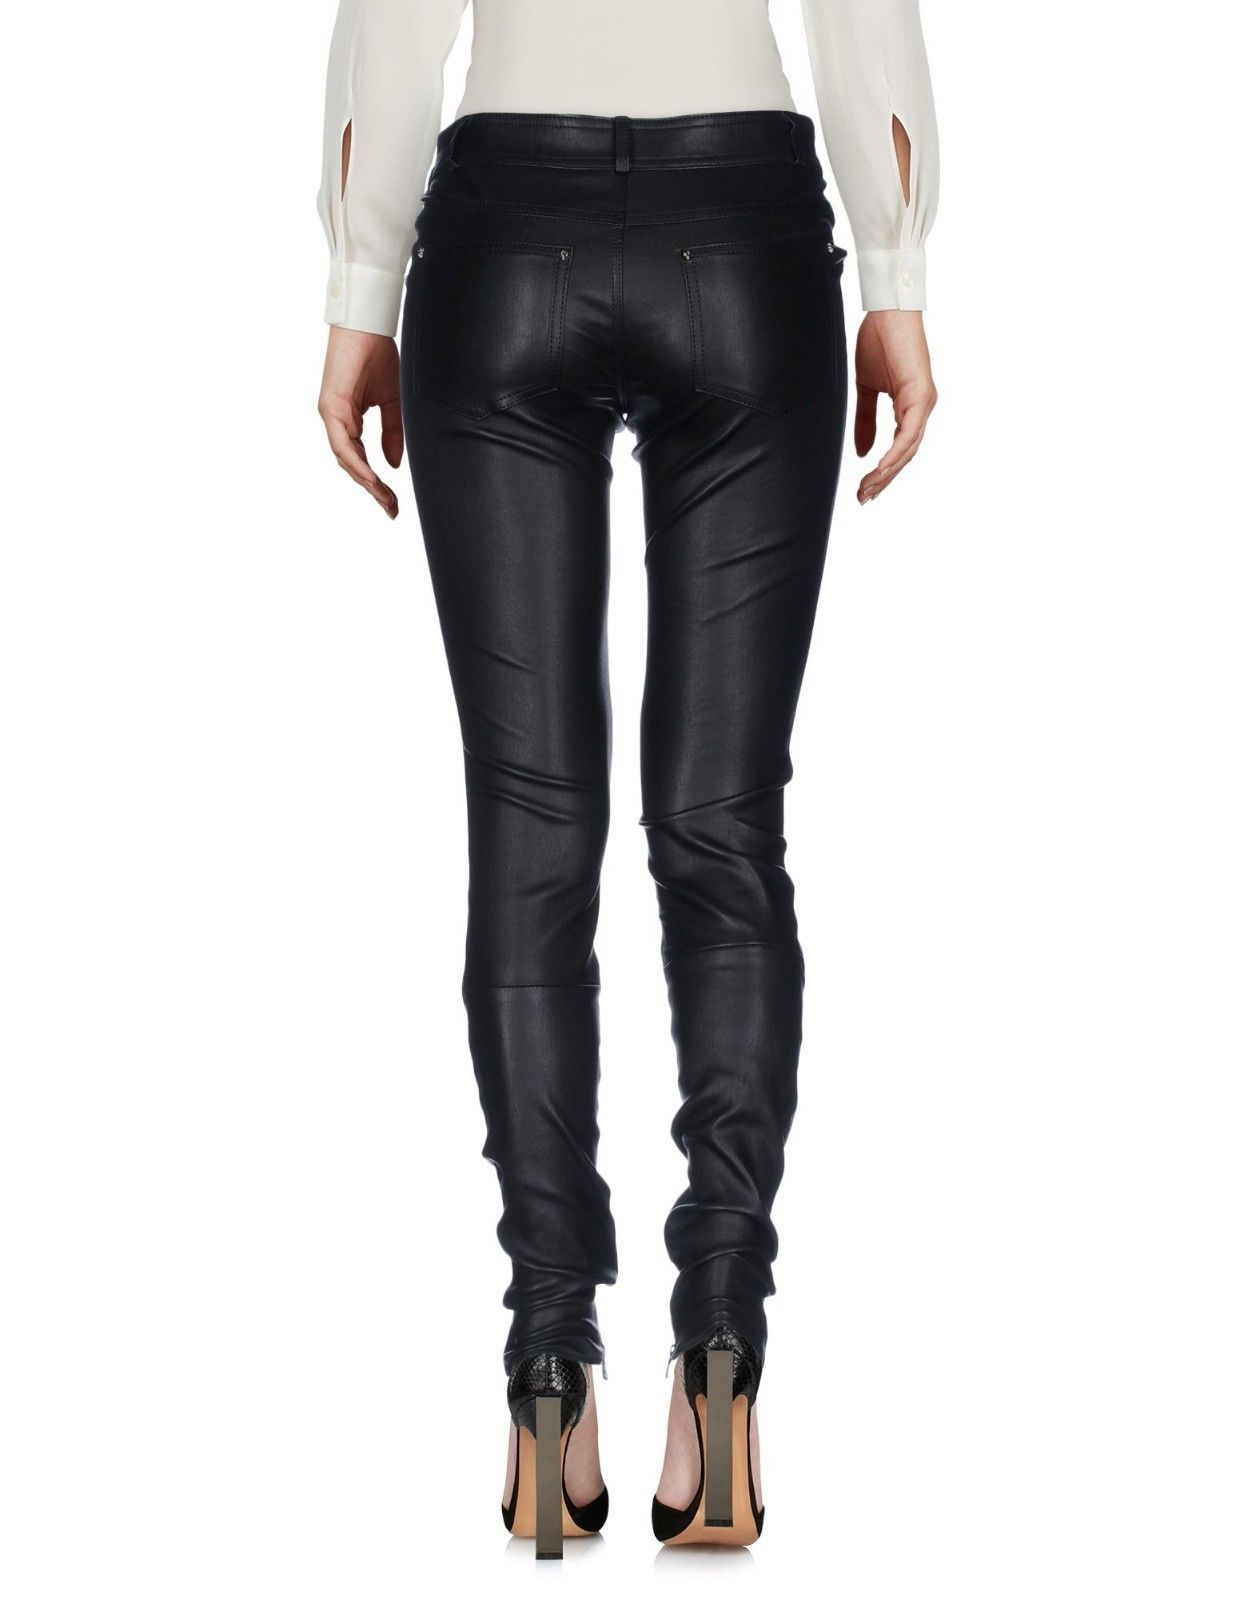 Trendy Soft Slim Fit Casual Hot Women's Genuine Soft Lamb Skin Leather Pants